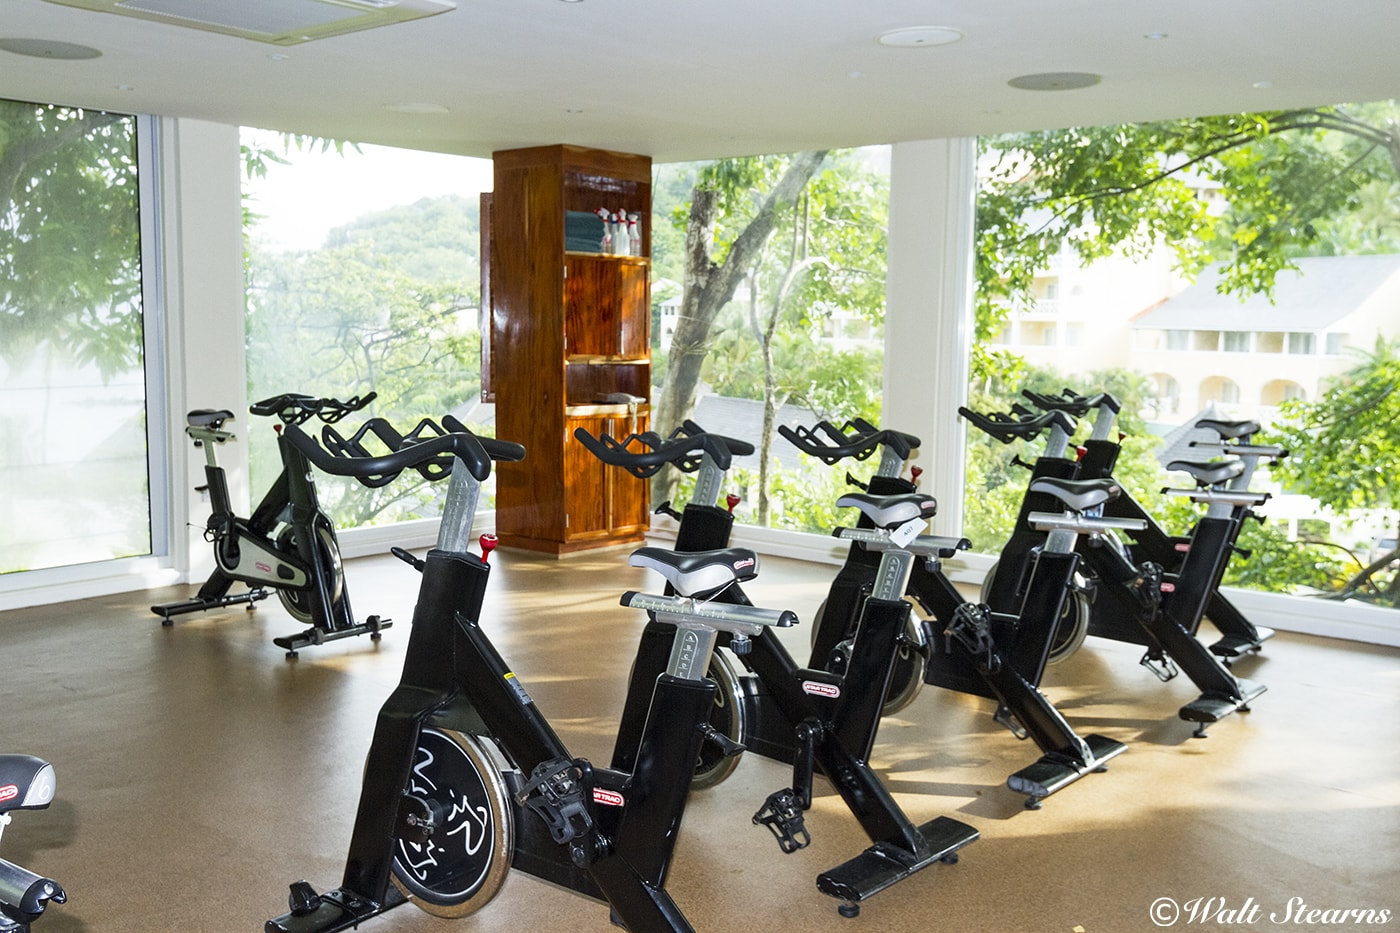 Spin bikes await at the Treetop Fitness Center, where inspiring views come with each workout.